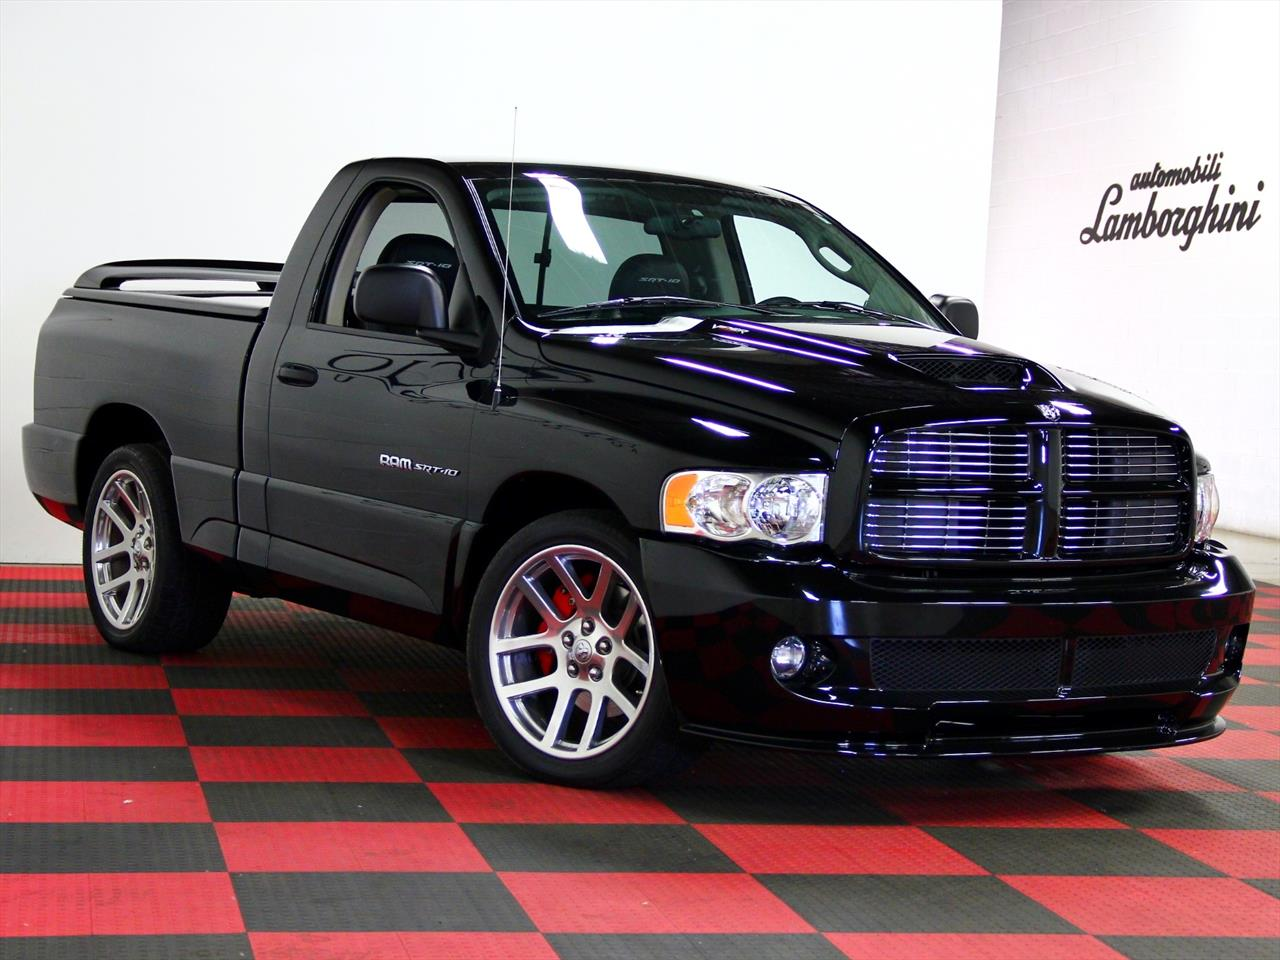 2005 dodge ram srt 10. Black Bedroom Furniture Sets. Home Design Ideas